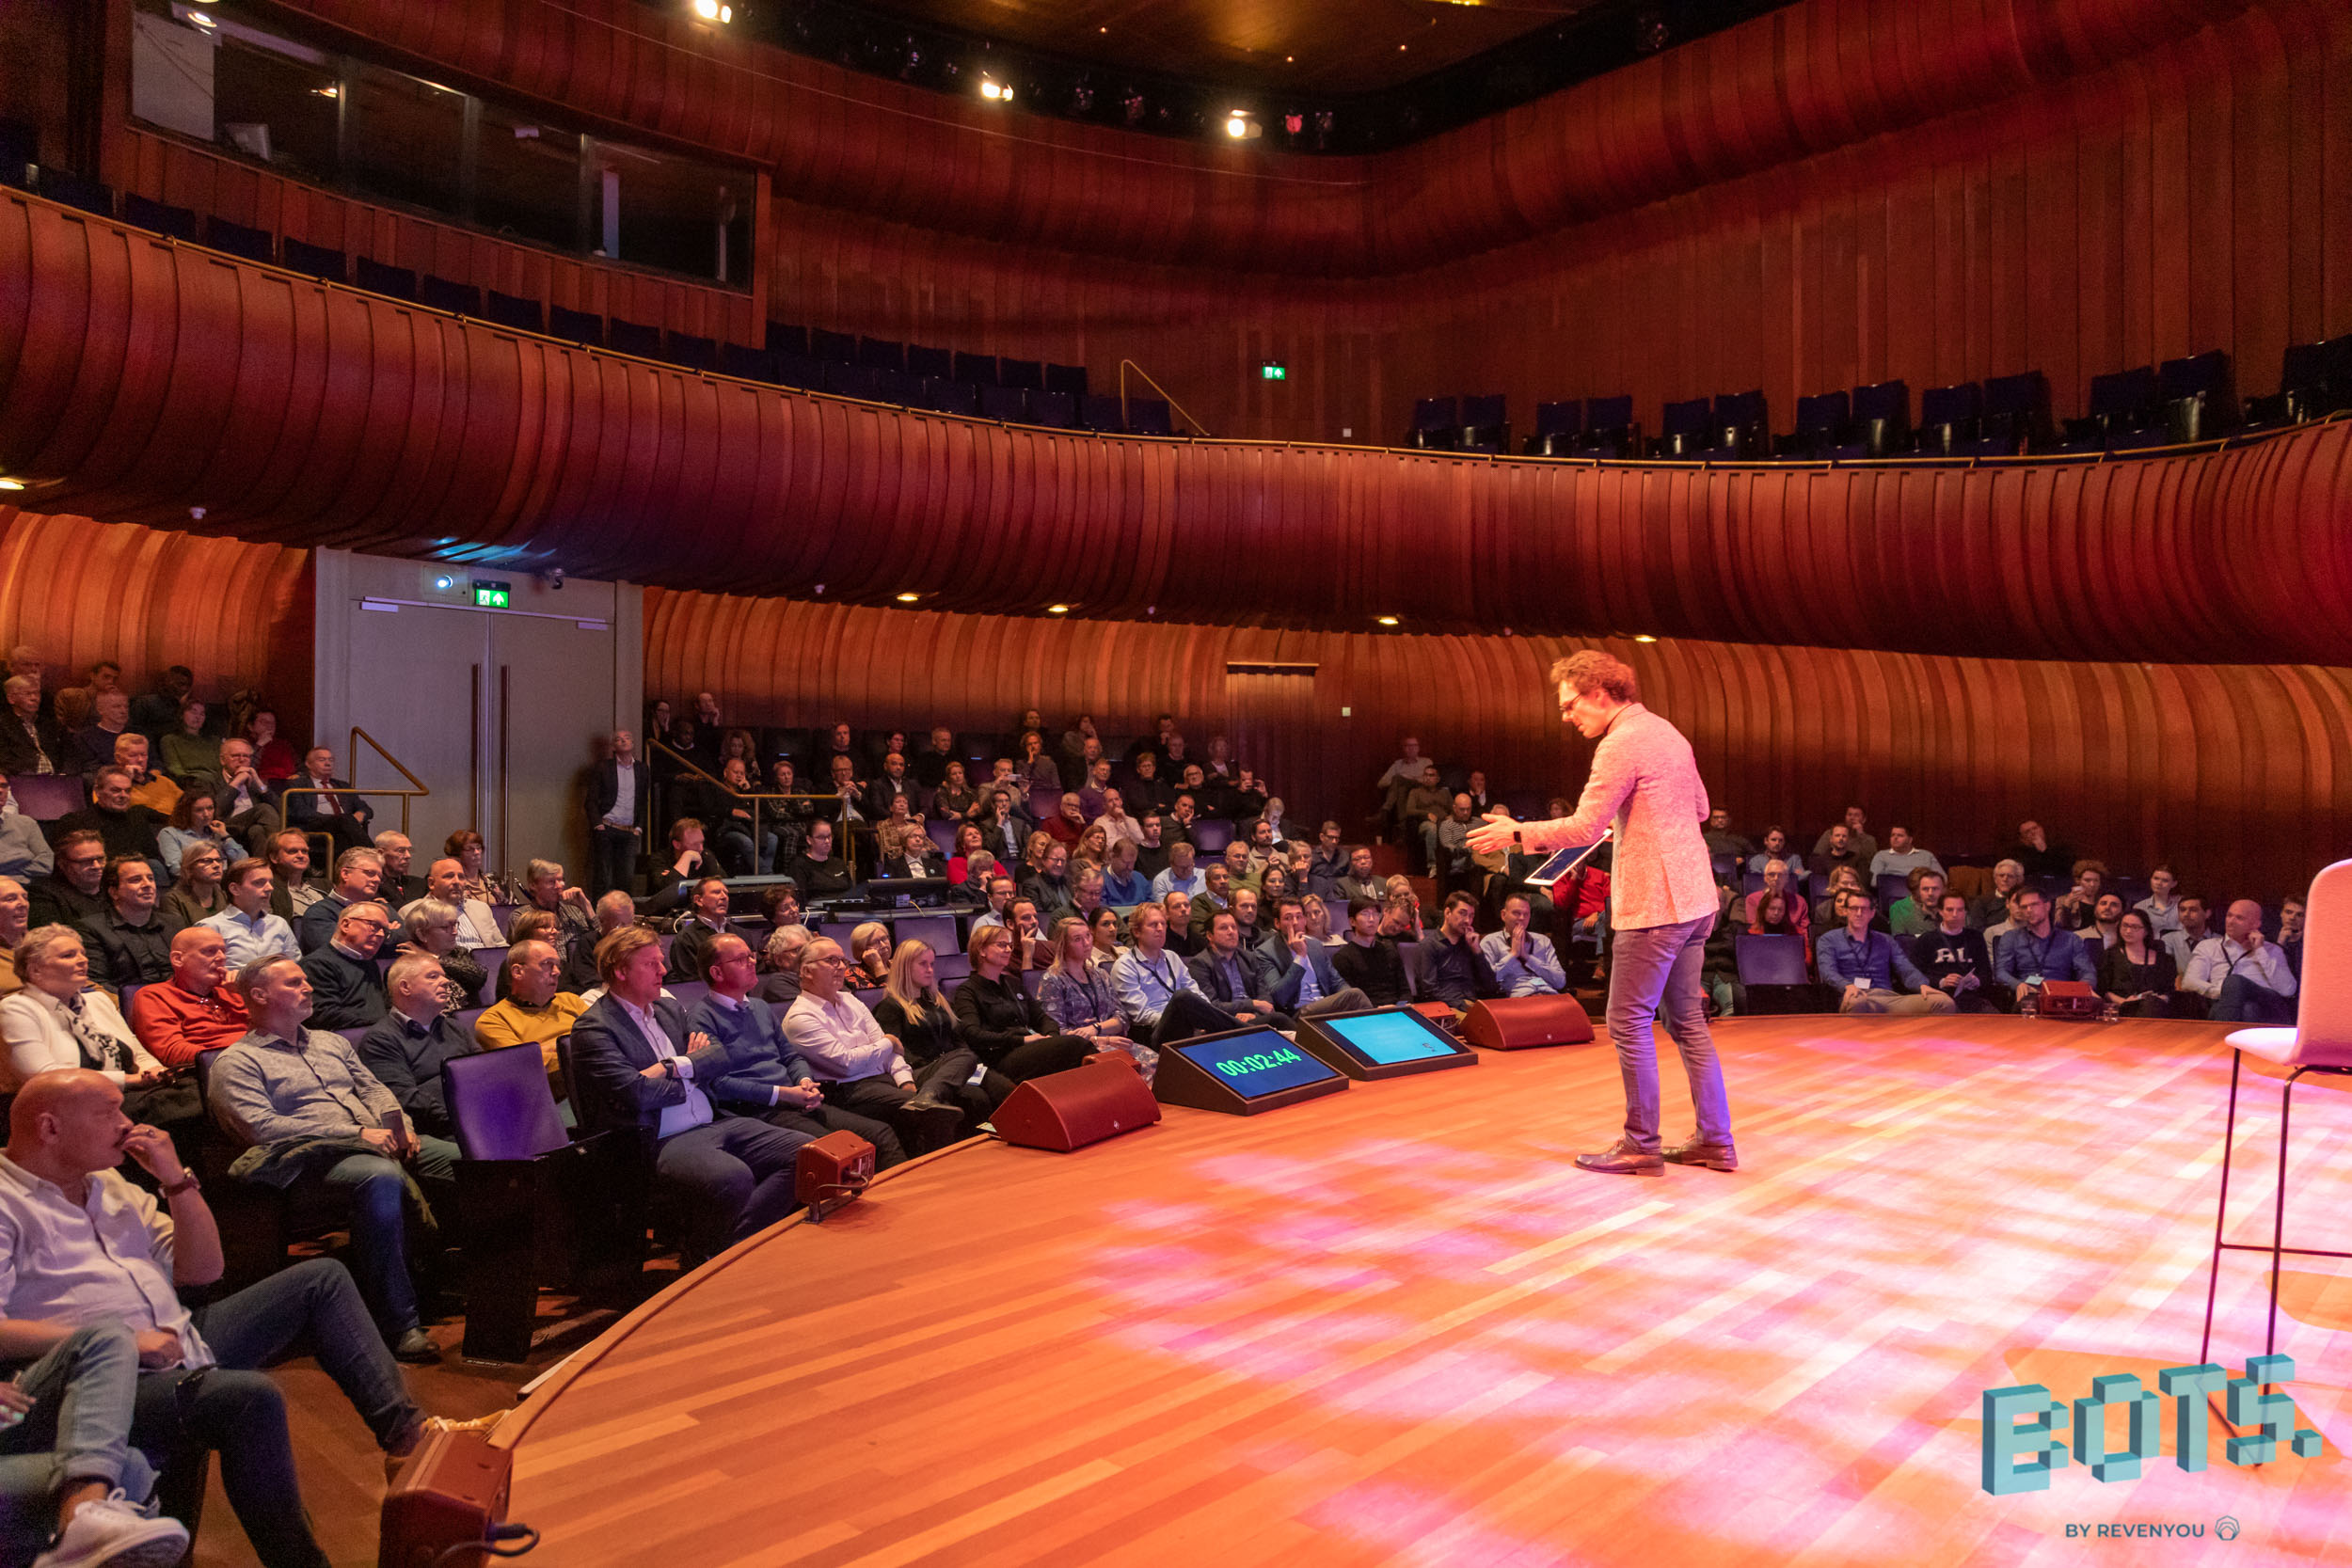 Shareholders meeting Philharmonie a great success